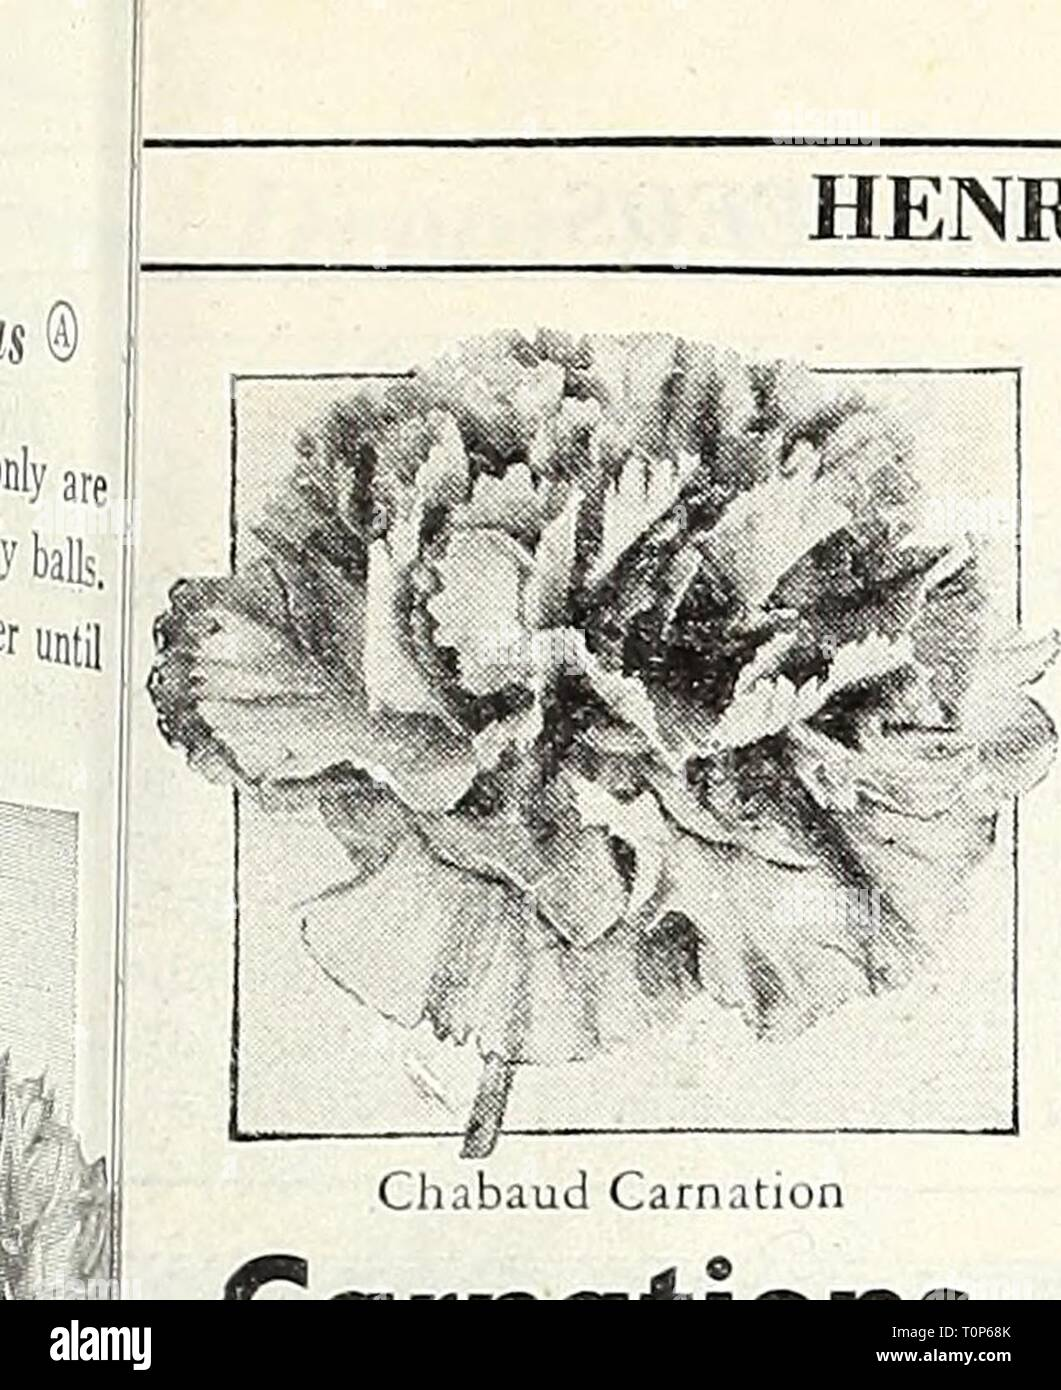 Dreer's 1948 - our 110th Dreer's 1948 - our 110th year  dreers1948our1101948henr Year: 1948  HENRY A. DKEER, Inc., Philadelphia, Pa. r Carnations anthus caryophyllus @ & [hhp] [ndispensable for greenhouse culture winter and for the summer garden. habaud's Giant Double [nup] Richly clove-scented, large double ooms measuring 2 inches or more ross. Often grown as annuals bloom- 5 in 5 to 6 months from sowing. 2 ft. '61 Blood Red 1767 Scarlef 64 Deep Salmon 1768 Whi^e 65 Rose 1769 Yellow Any of the above: Pkt. 15c; large pkt. 60c. 4780 Chnbaud Carnation Collection One packet each of the rp six col - Stock Image